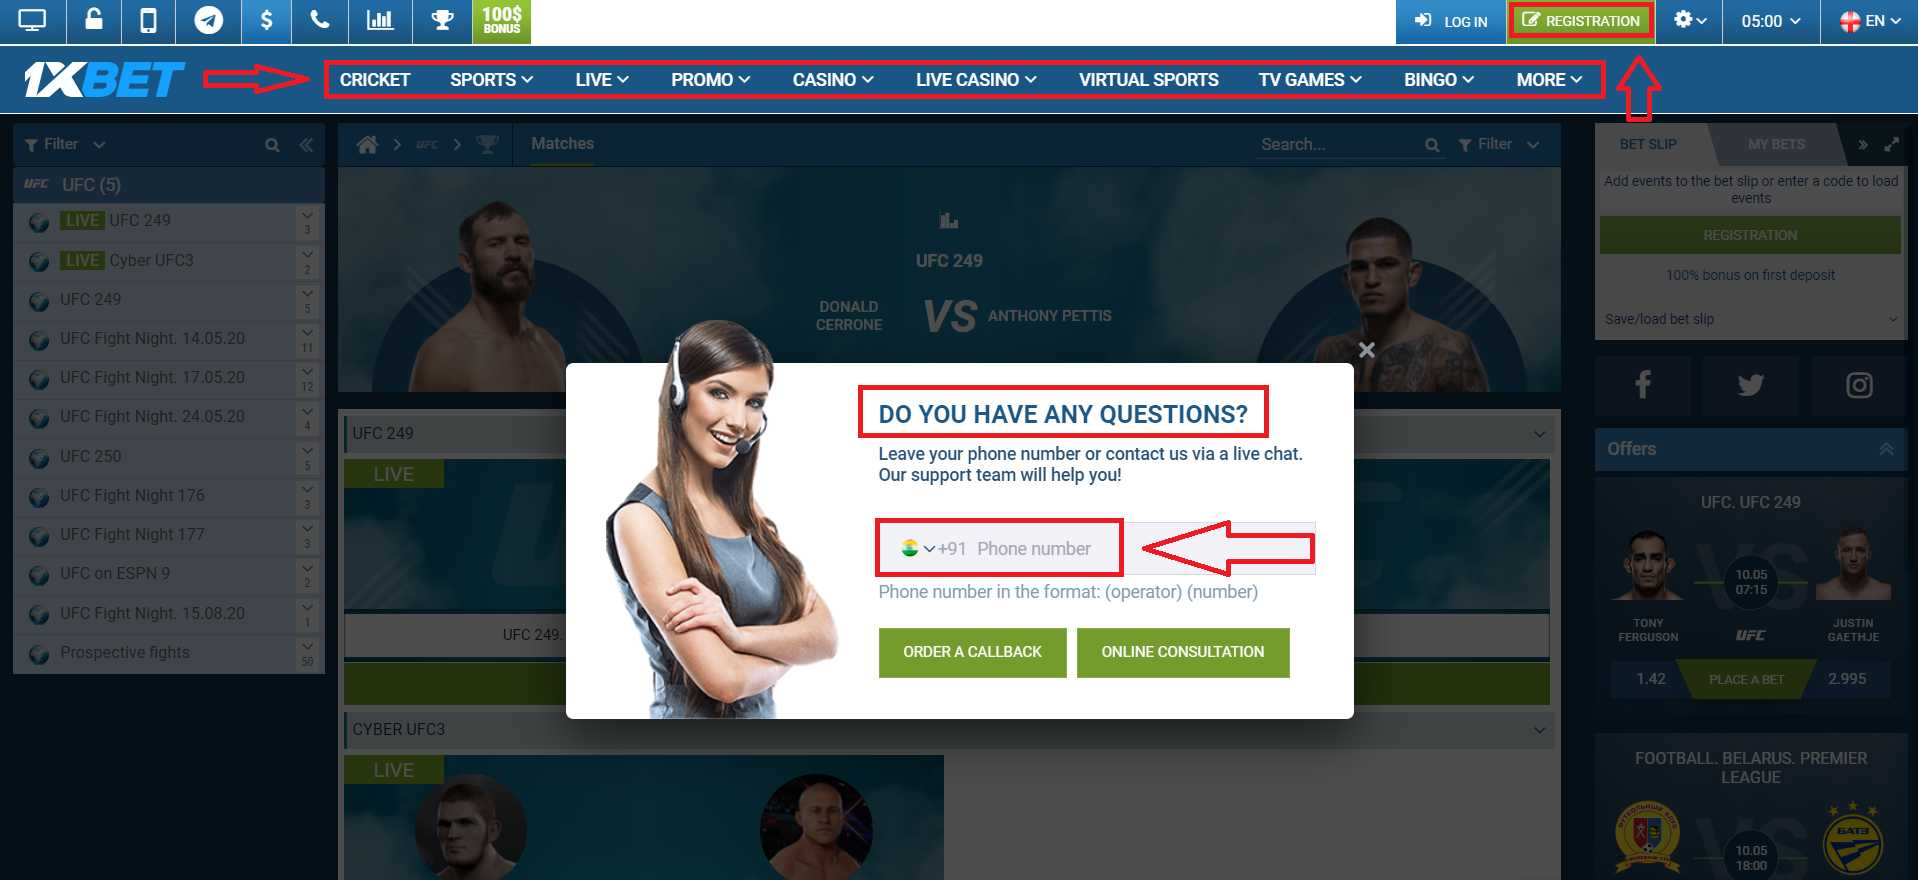 What You Should Do if You Have a 1xBet Login Problem